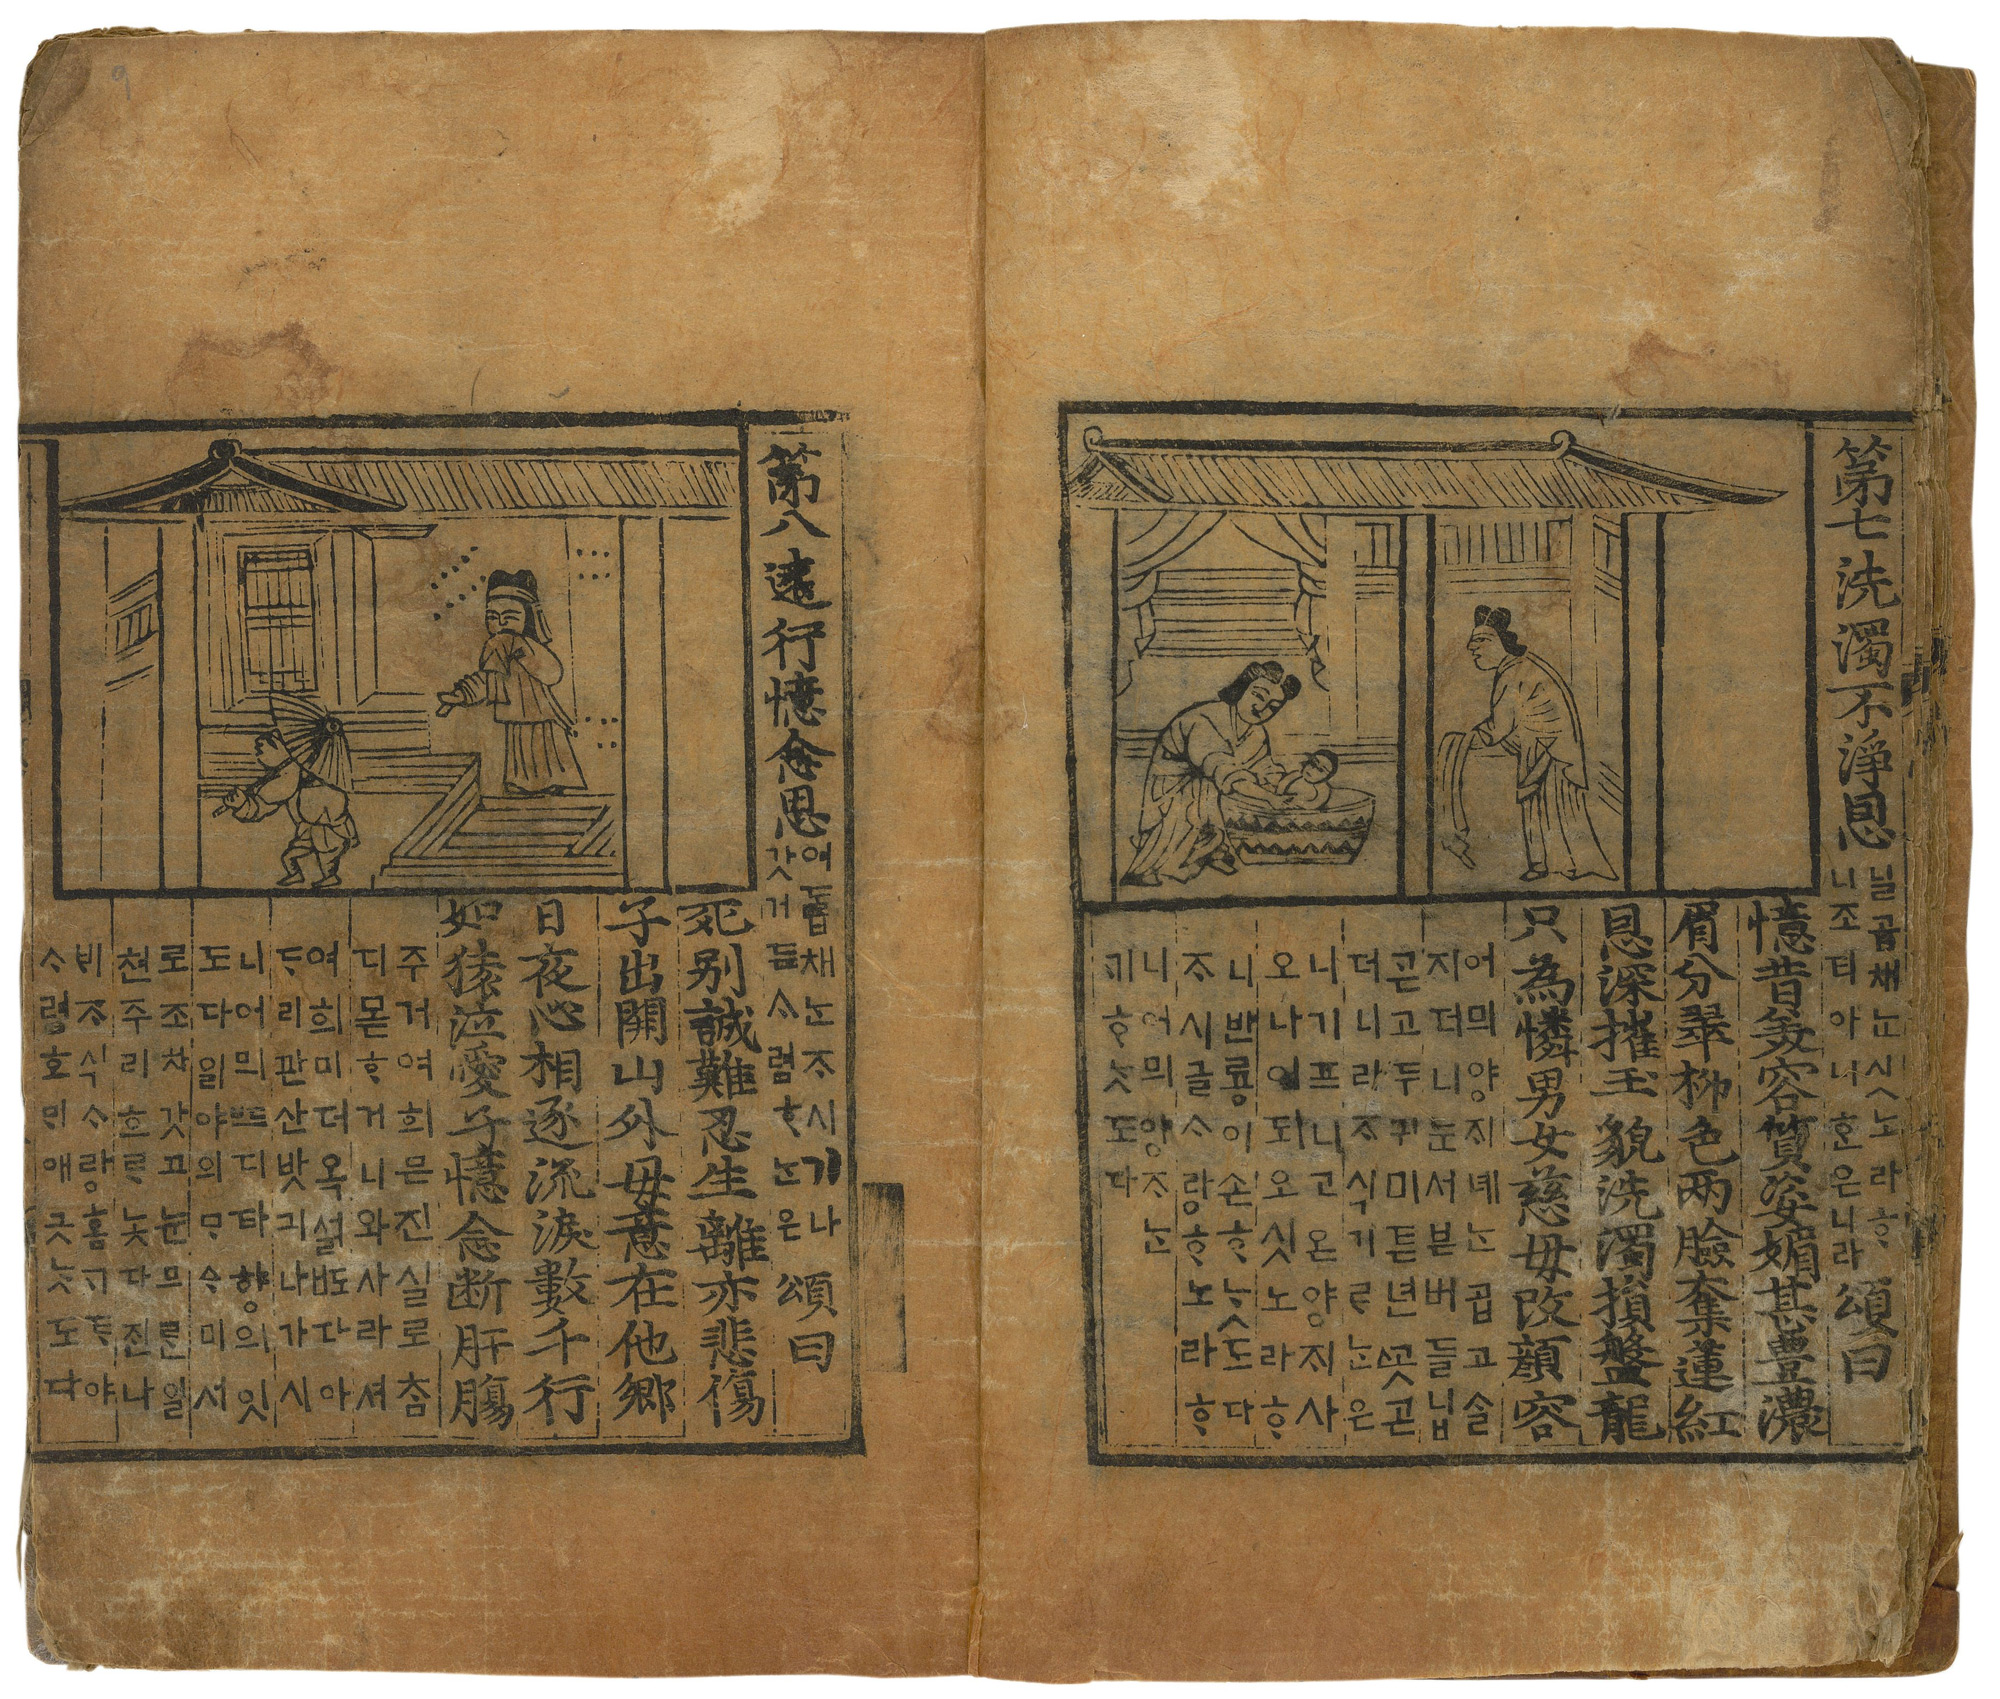 A page from the Sutra of Filial Piety